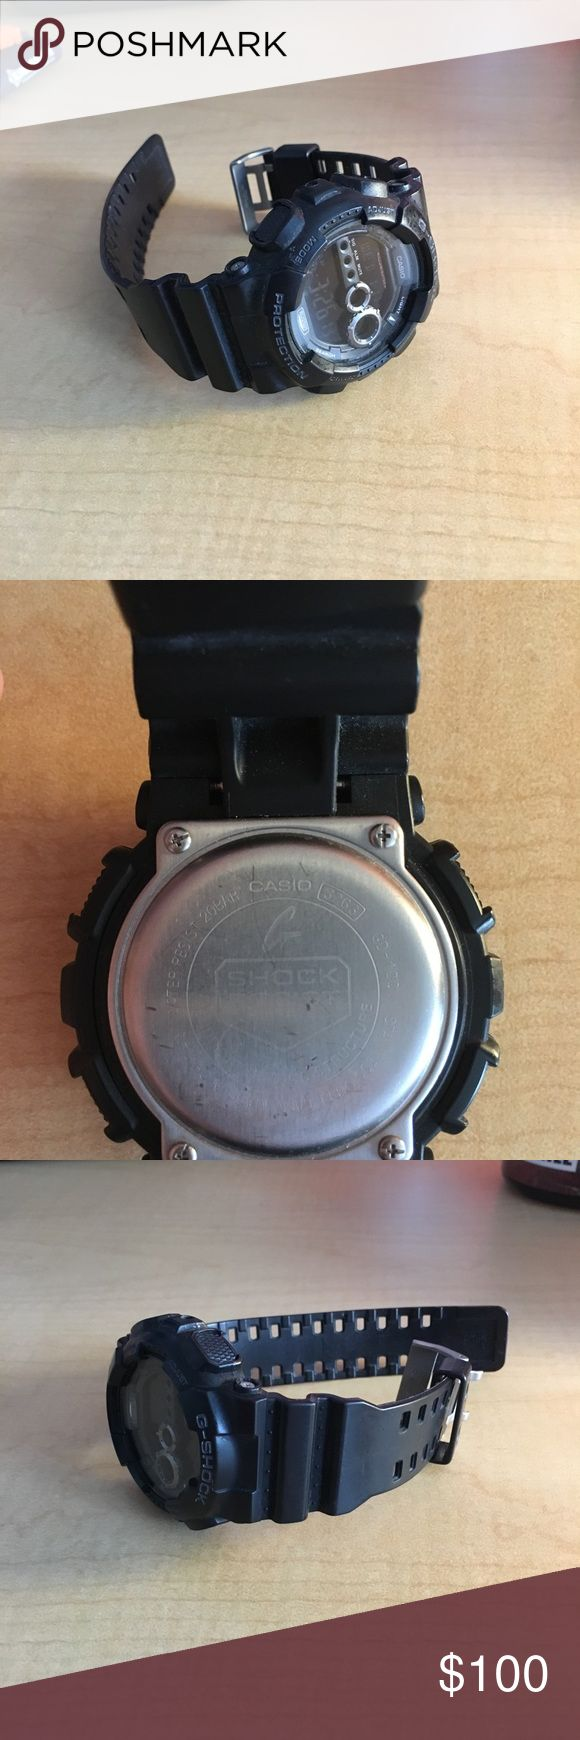 Casio G-Shock Selling my G-Shock watch. Watch has been worn but still In great shape. G-Shocks are just about indestructible and it is a great watch! Open to offers. Casio Accessories Watches